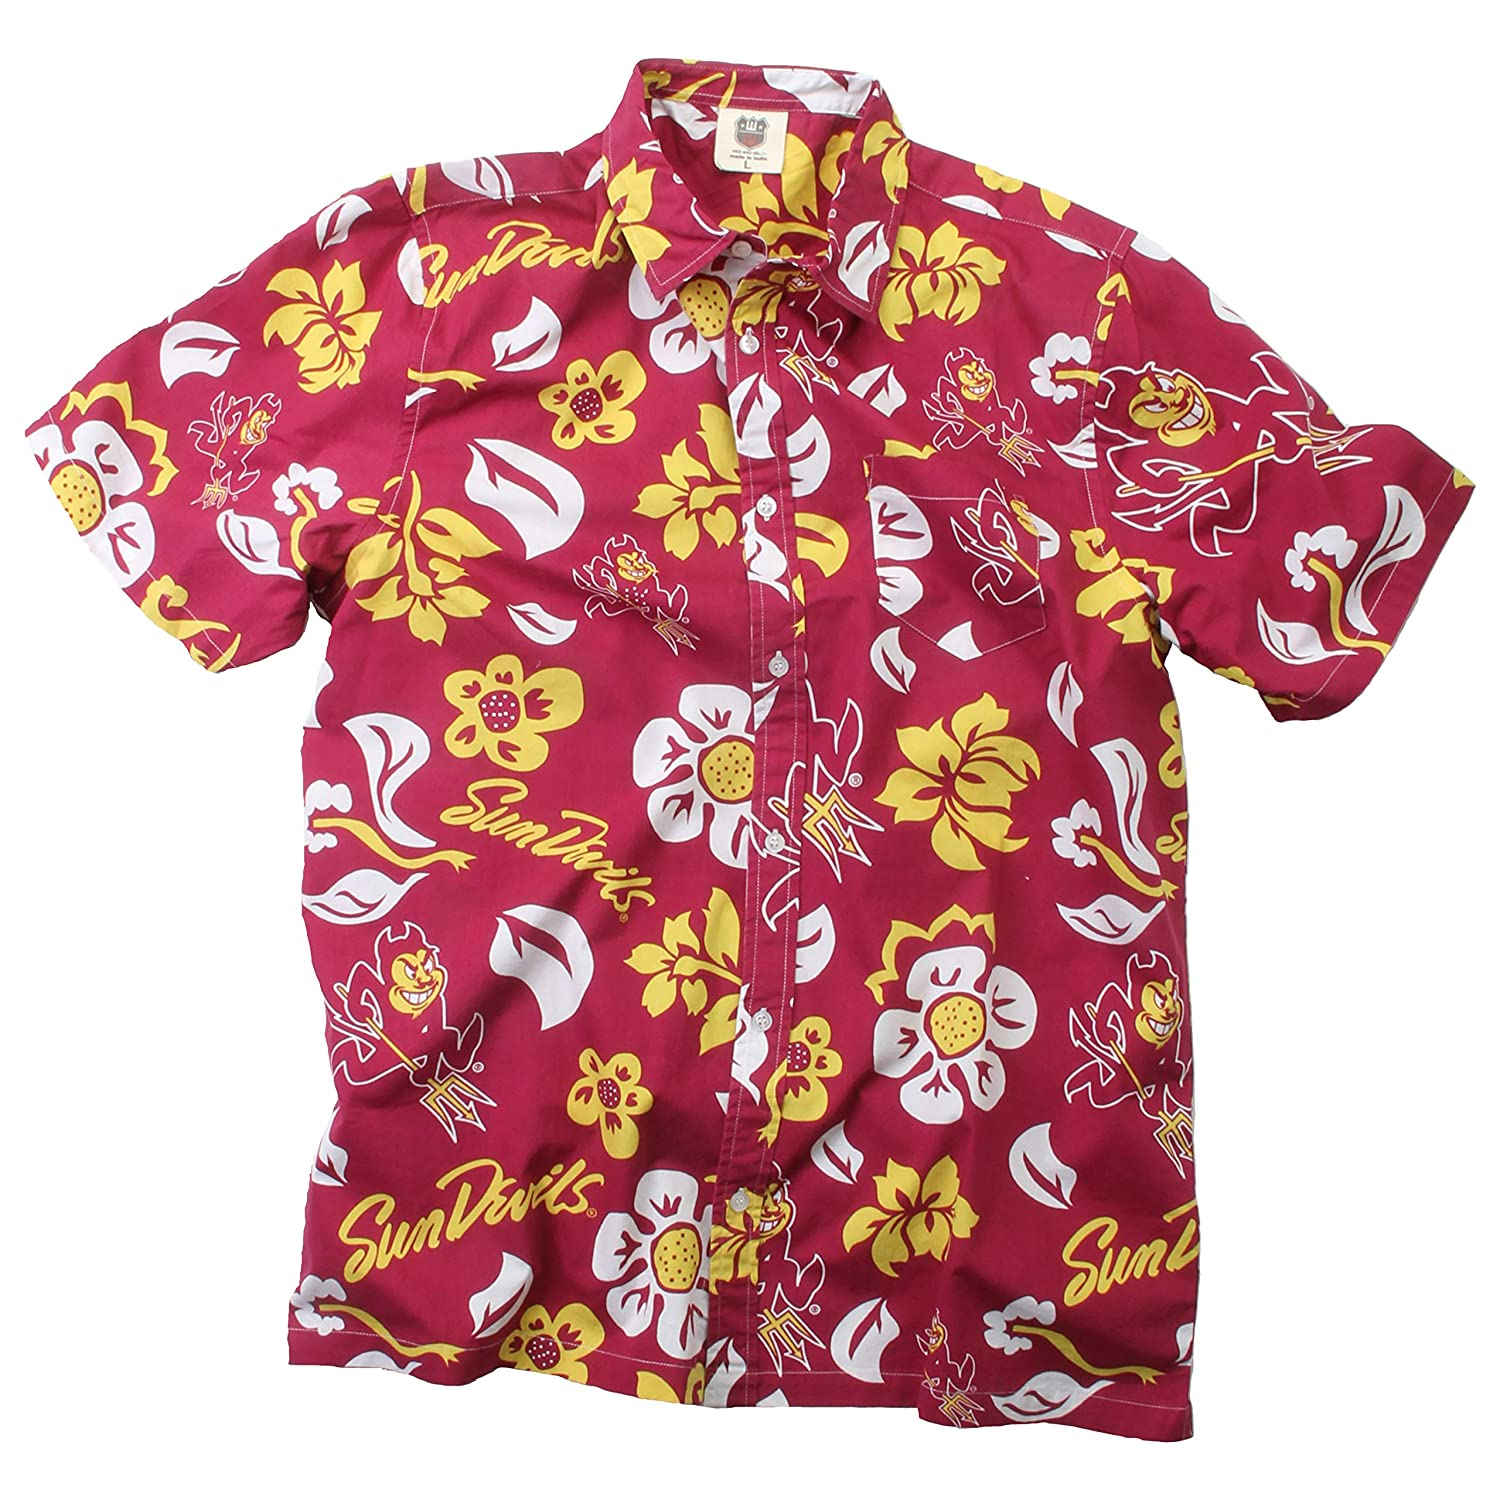 a1f2decd02c Amazon.com   Wes and Willy NCAA Mens Short Sleeve Button Up Floral Beach  Shirt   Sports   Outdoors